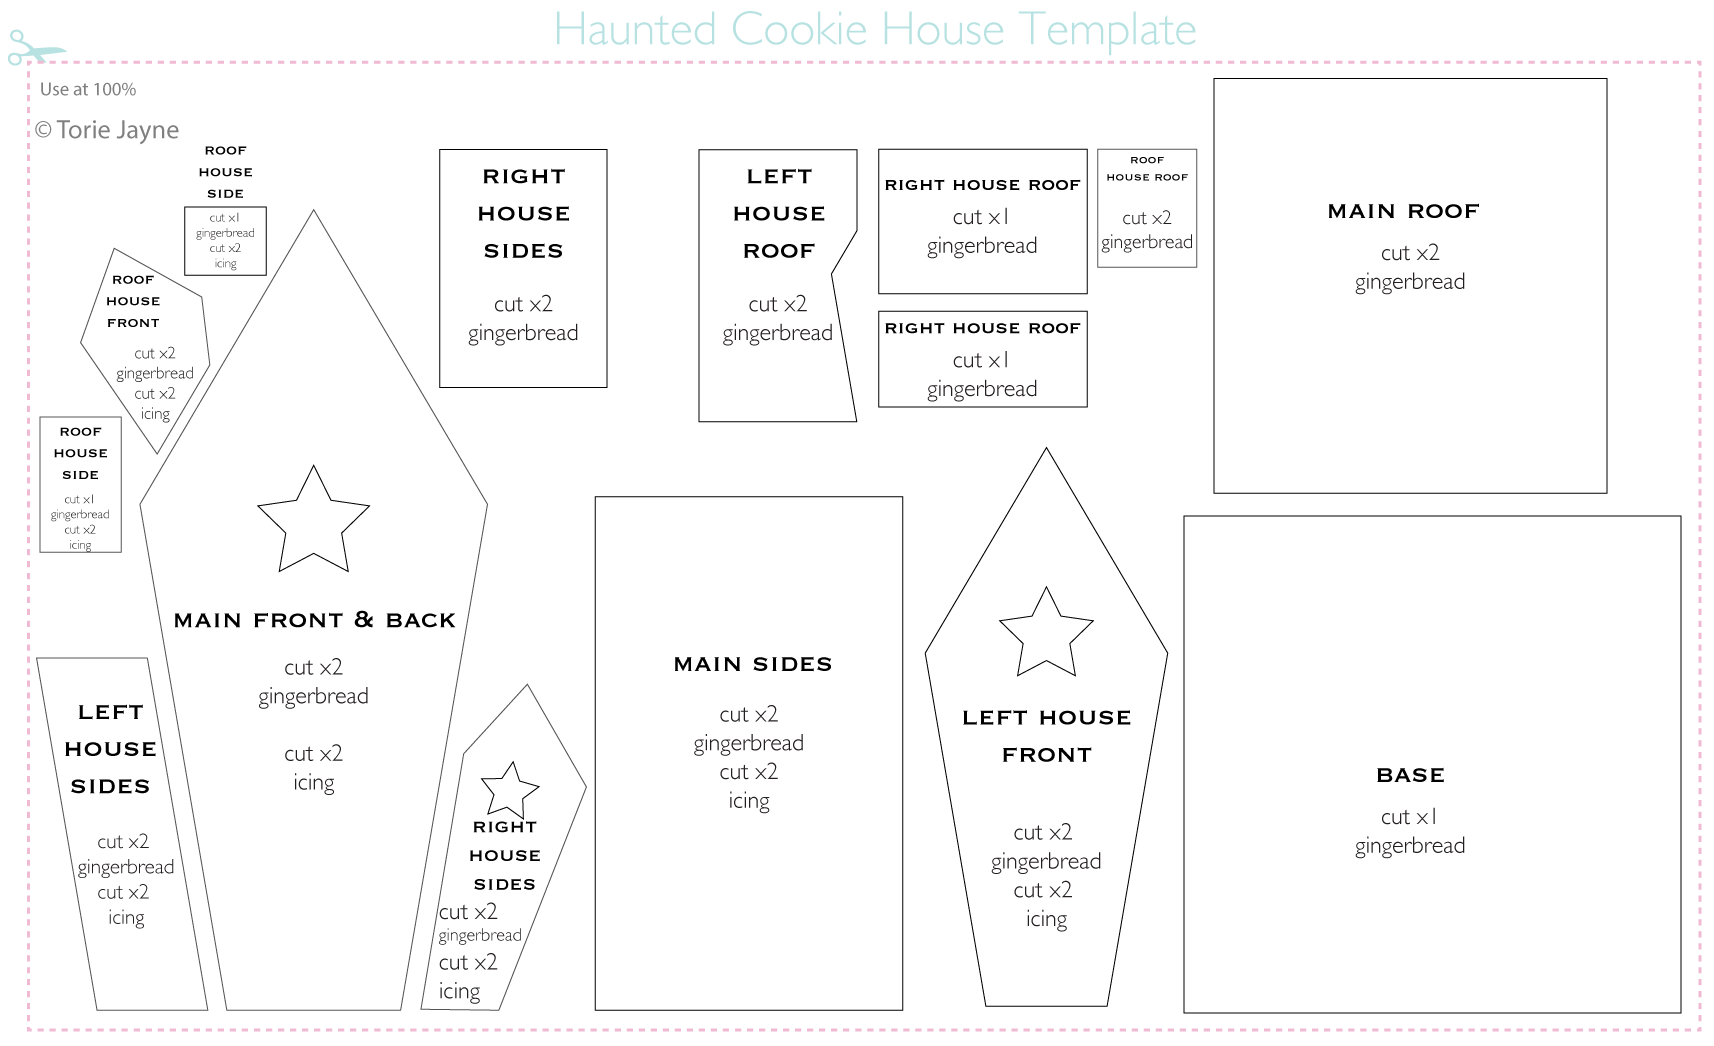 gingerbread house roof template  Haunted cookie house template | House template, Gingerbread ...